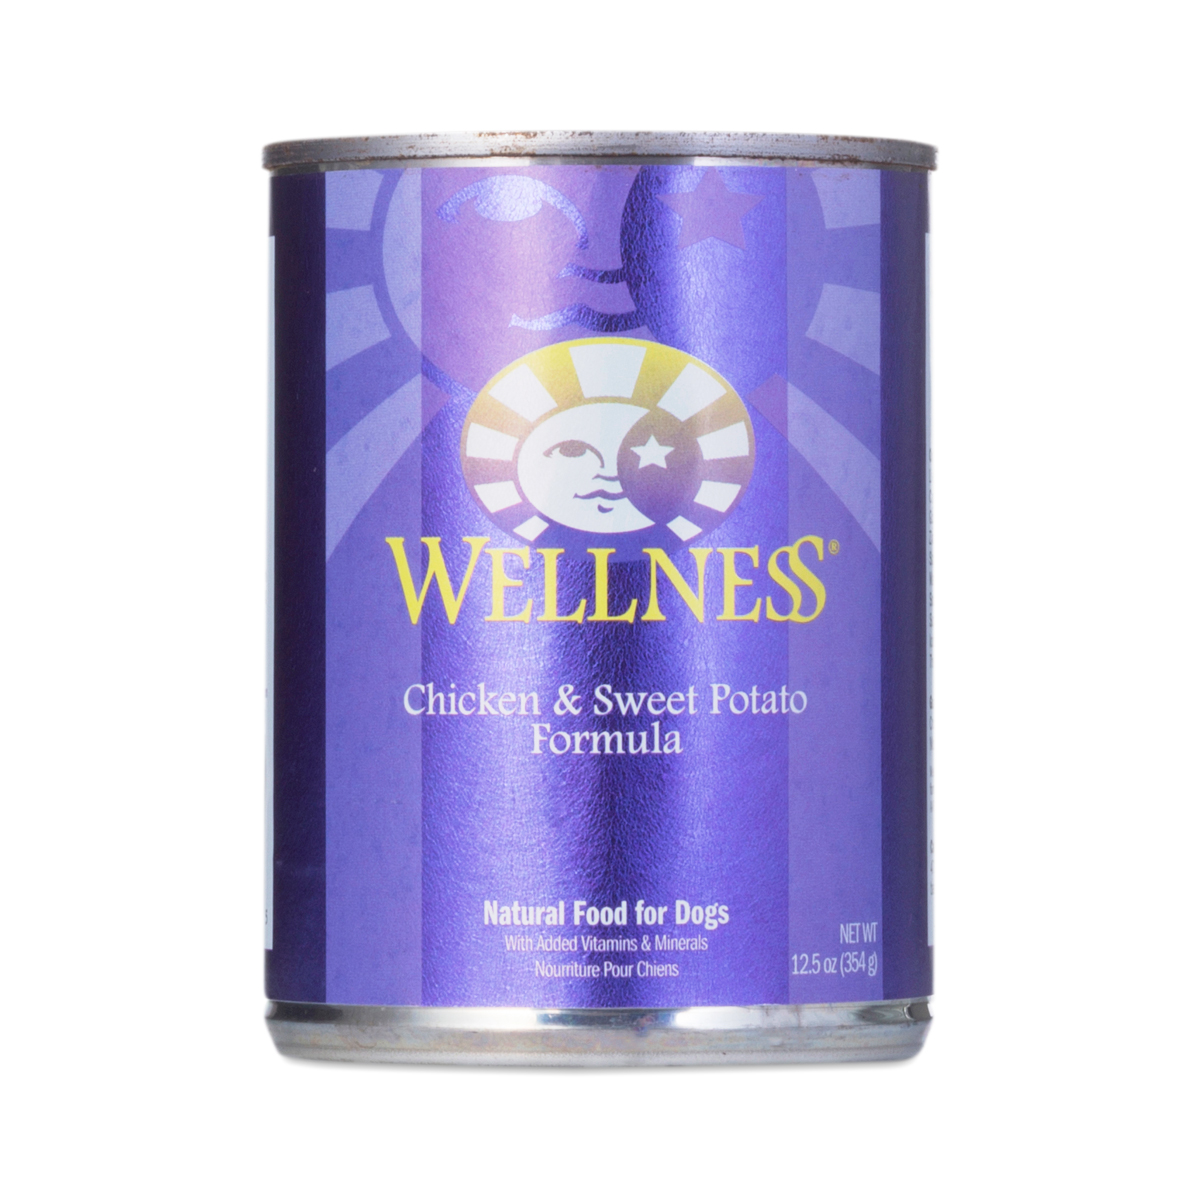 Wellness Chicken & Sweet Potato Canned Dog Food 12.5 oz can